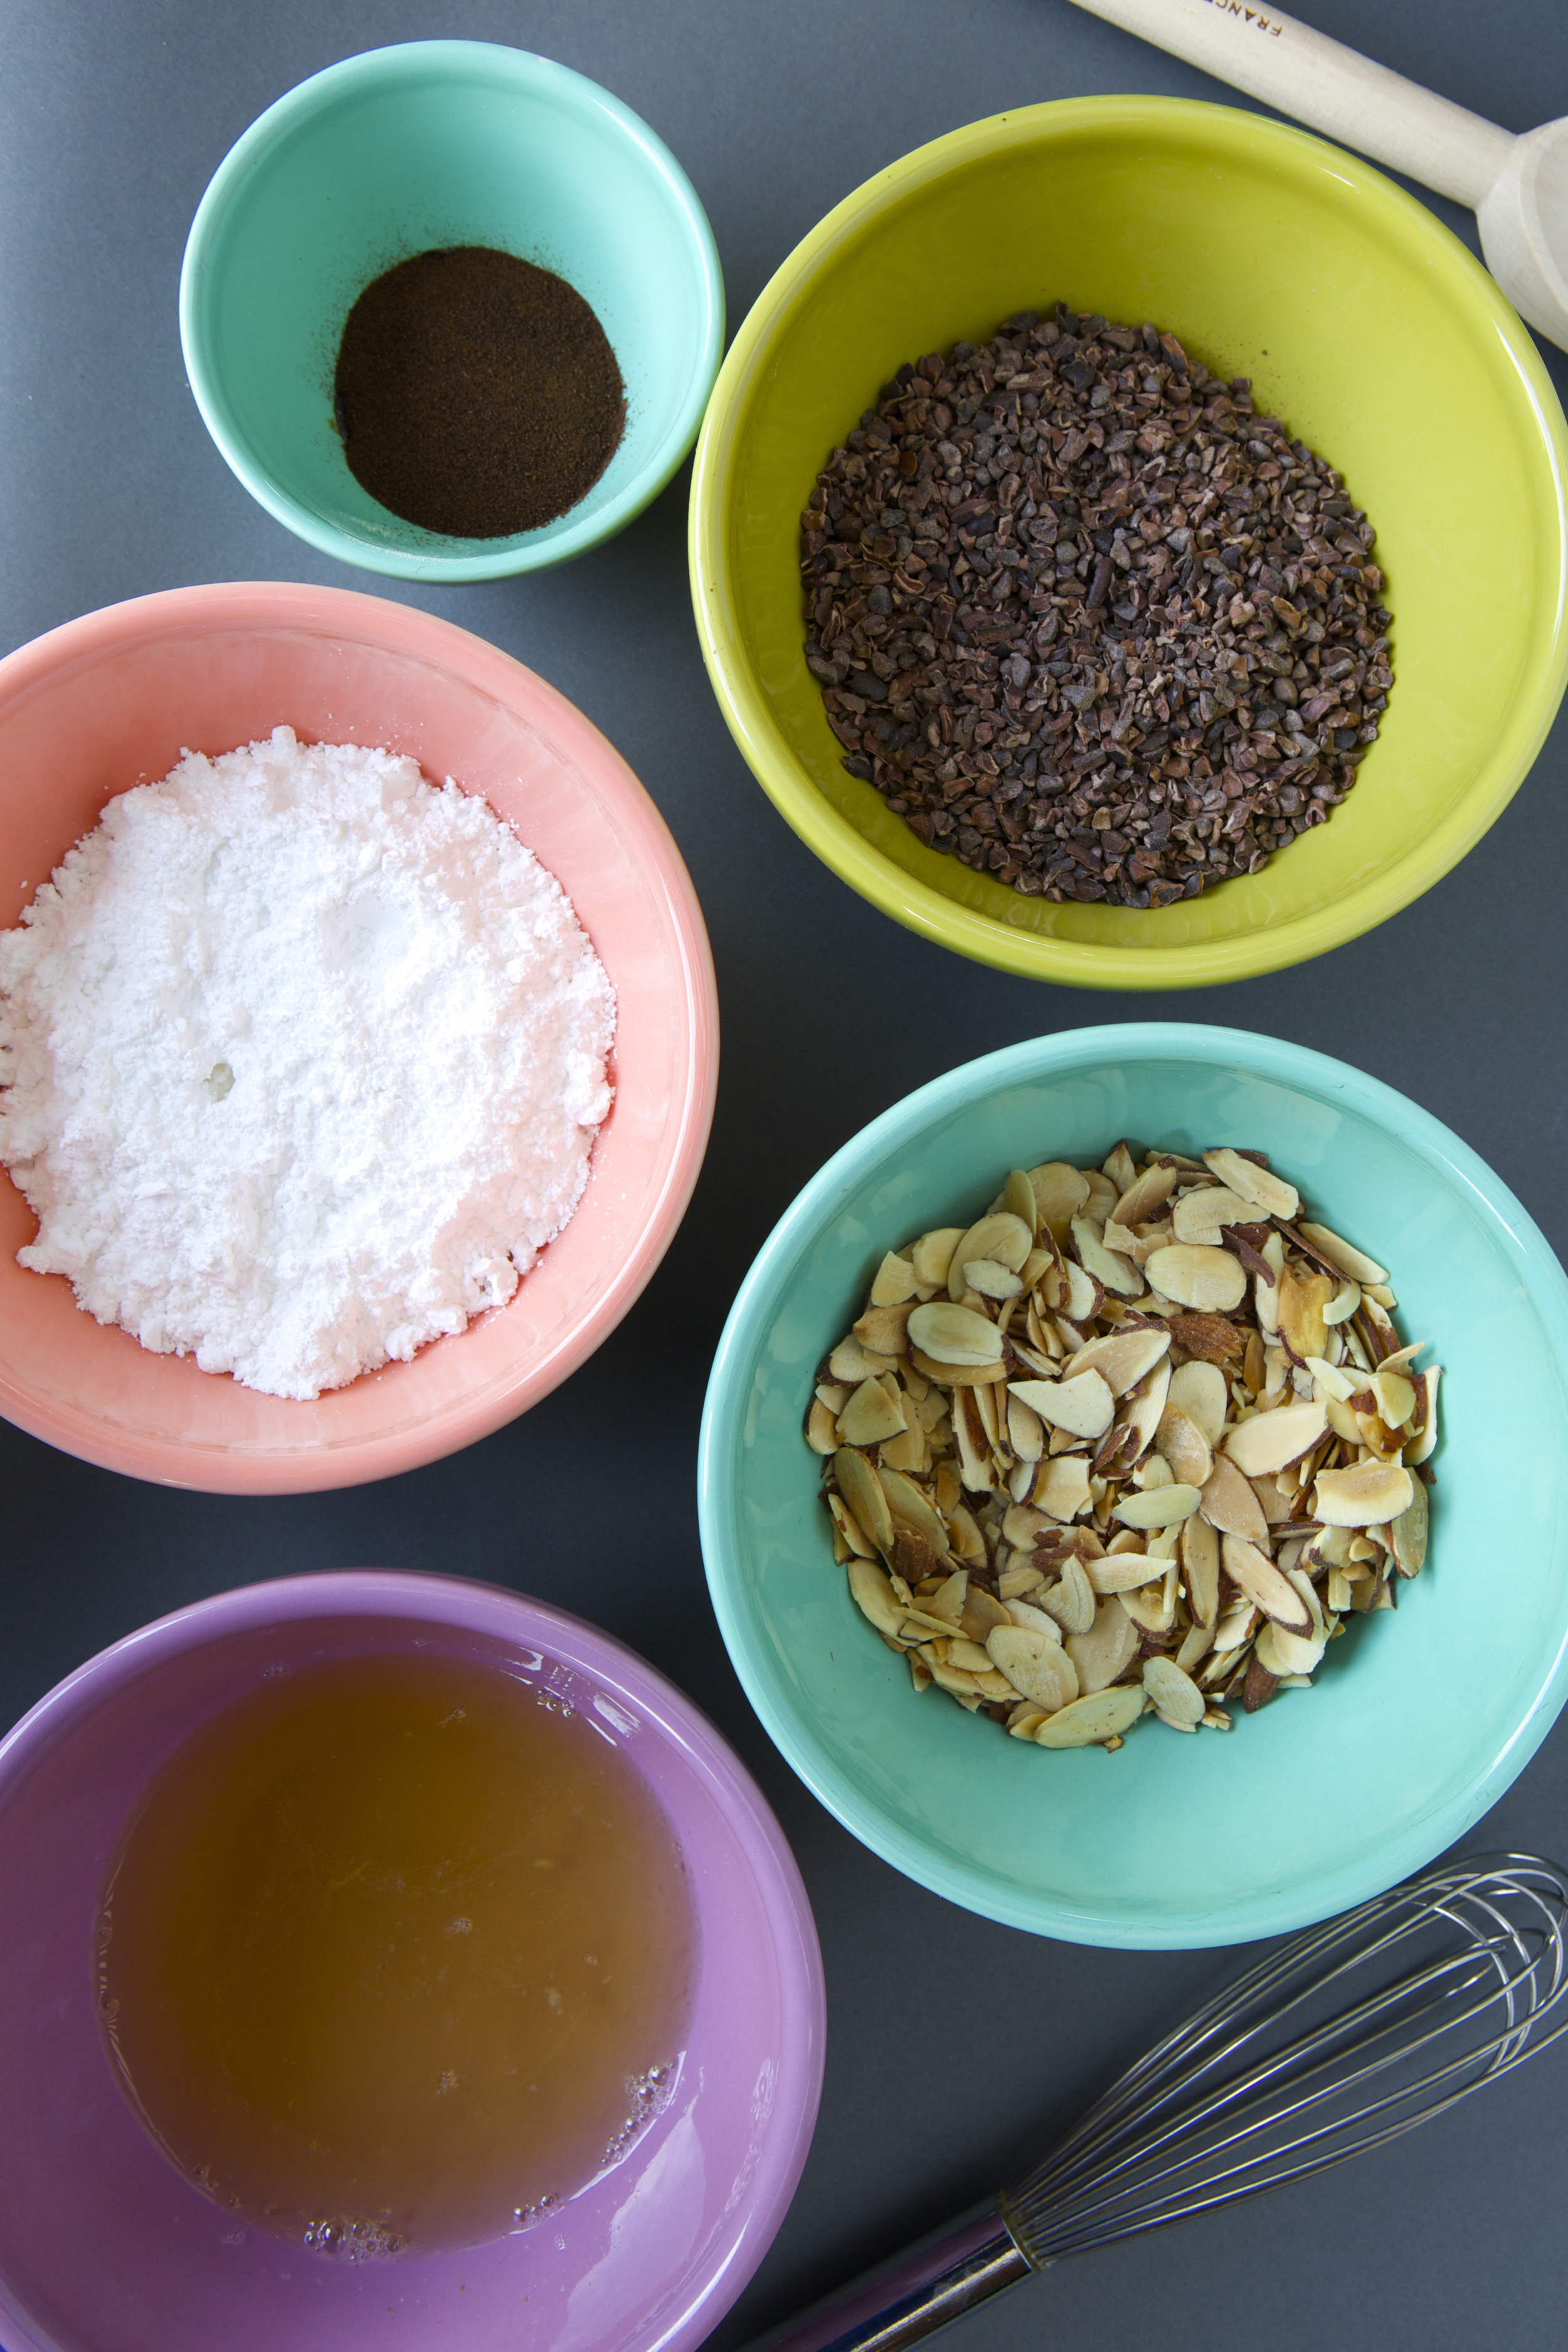 Just a few ingredients to make a delicious cookie.